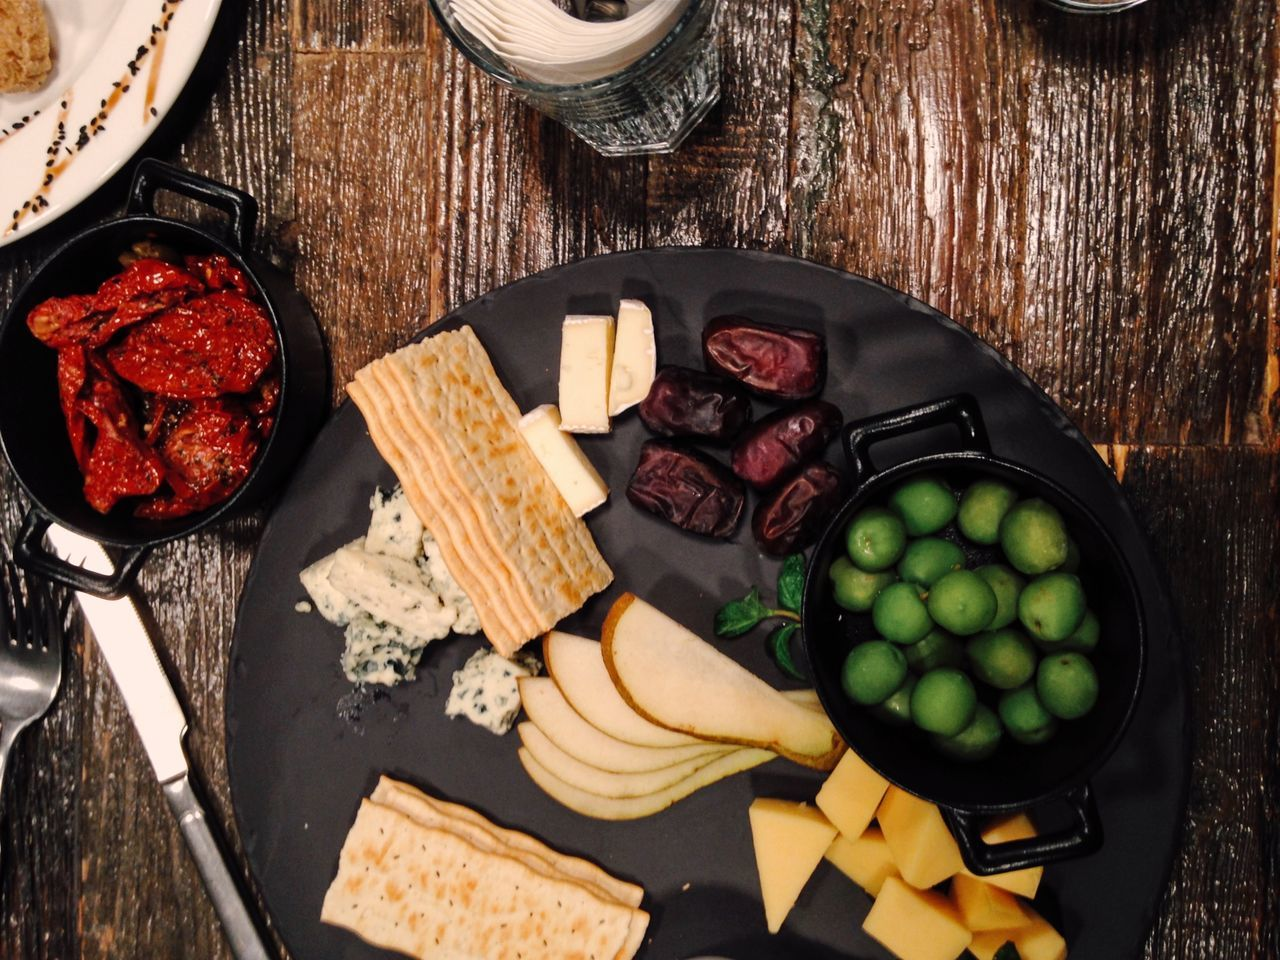 Snacks for wine Wood - Material Vegetable Food And Drink Food No People Ingredient Healthy Eating Close-up Freshness Cheese